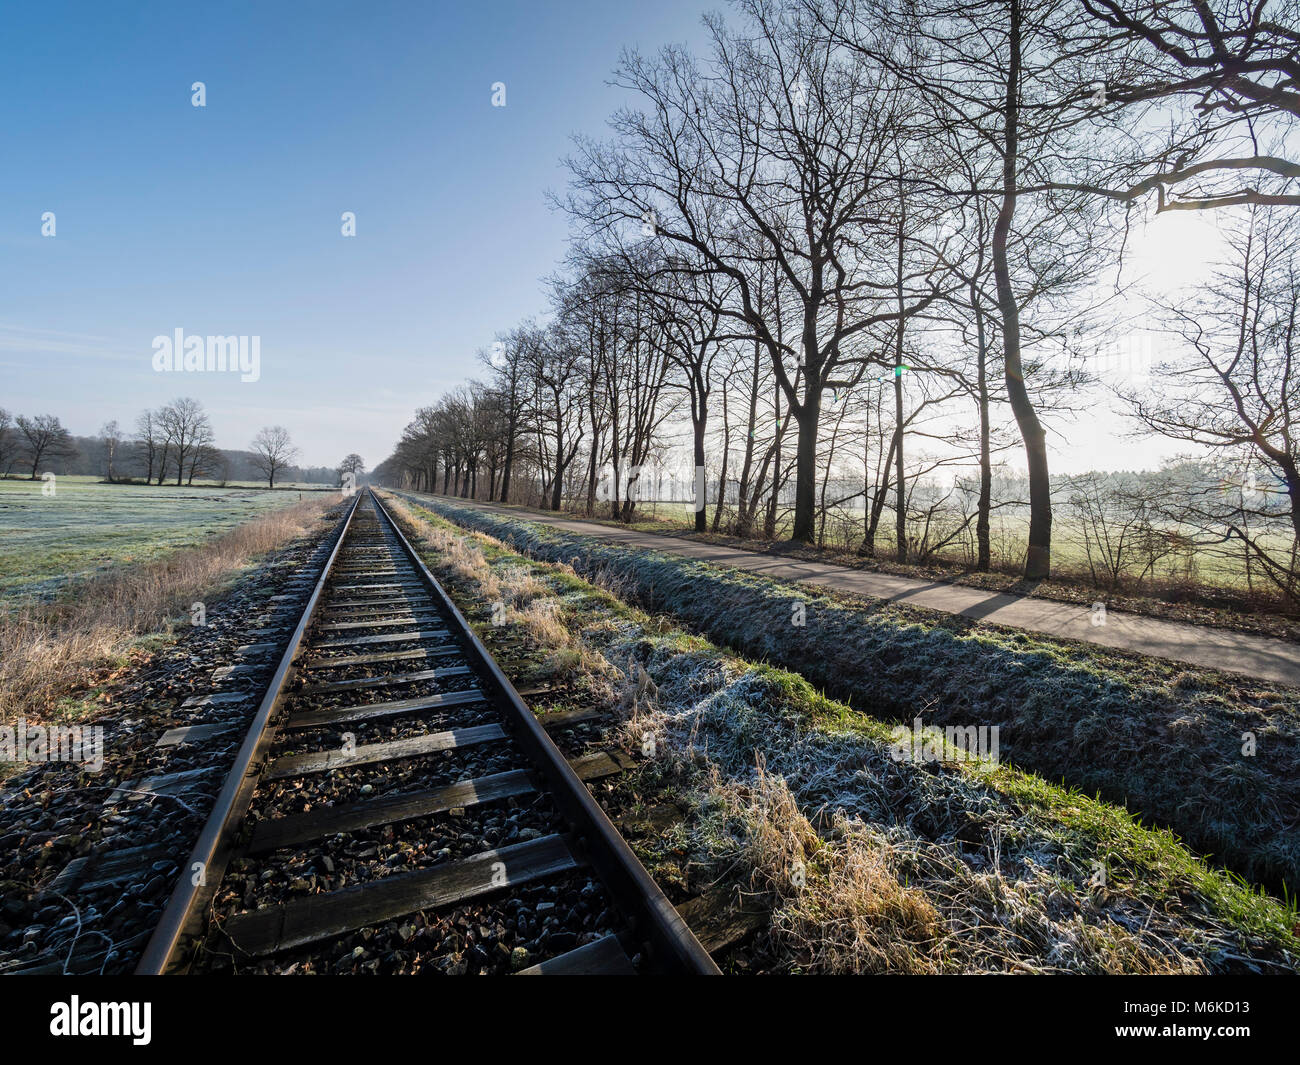 Railroad tracks of the OHE,  Osthannoversche Eisenbahnen, winter day, rural road, railway network, Lachtehausen, Stock Photo